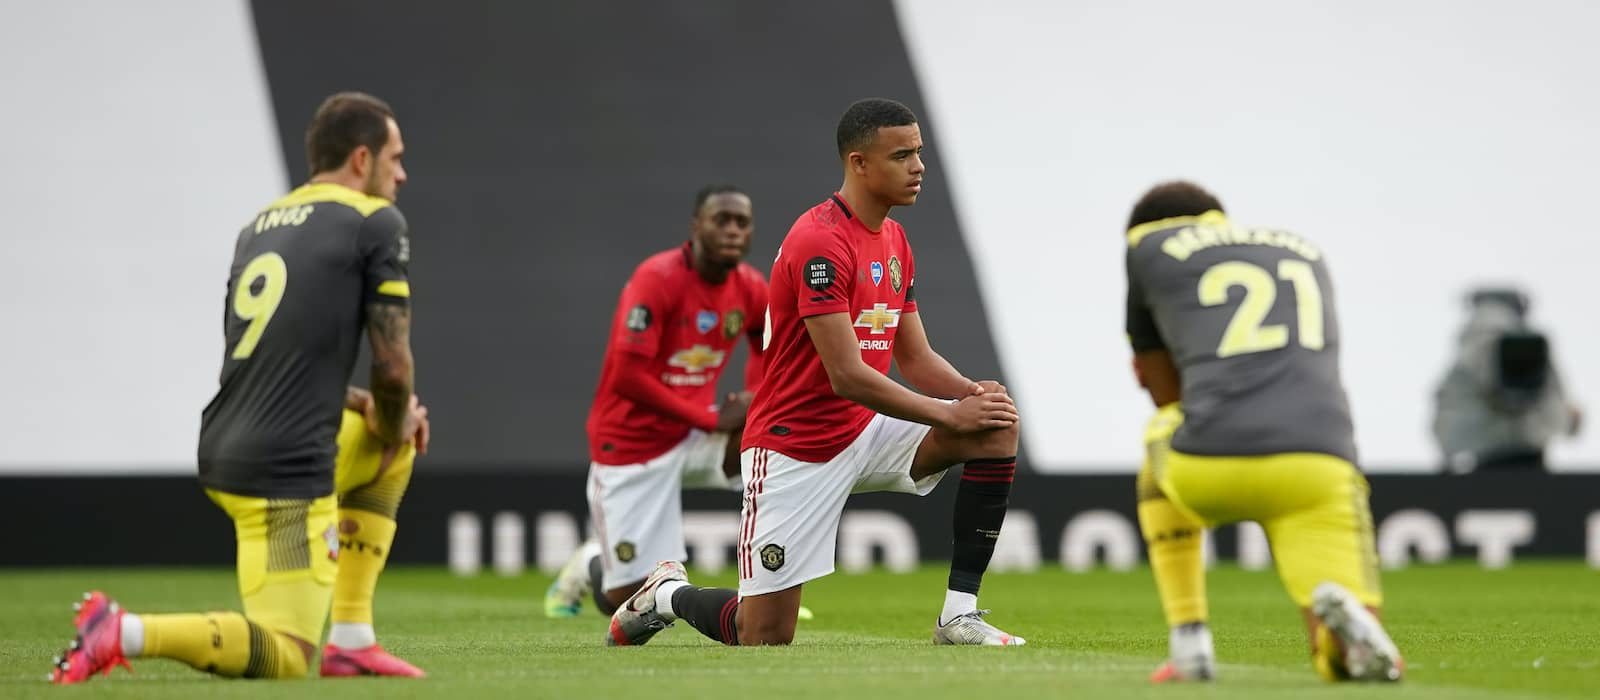 Manchester United could face Crystal Palace without Mason Greenwood